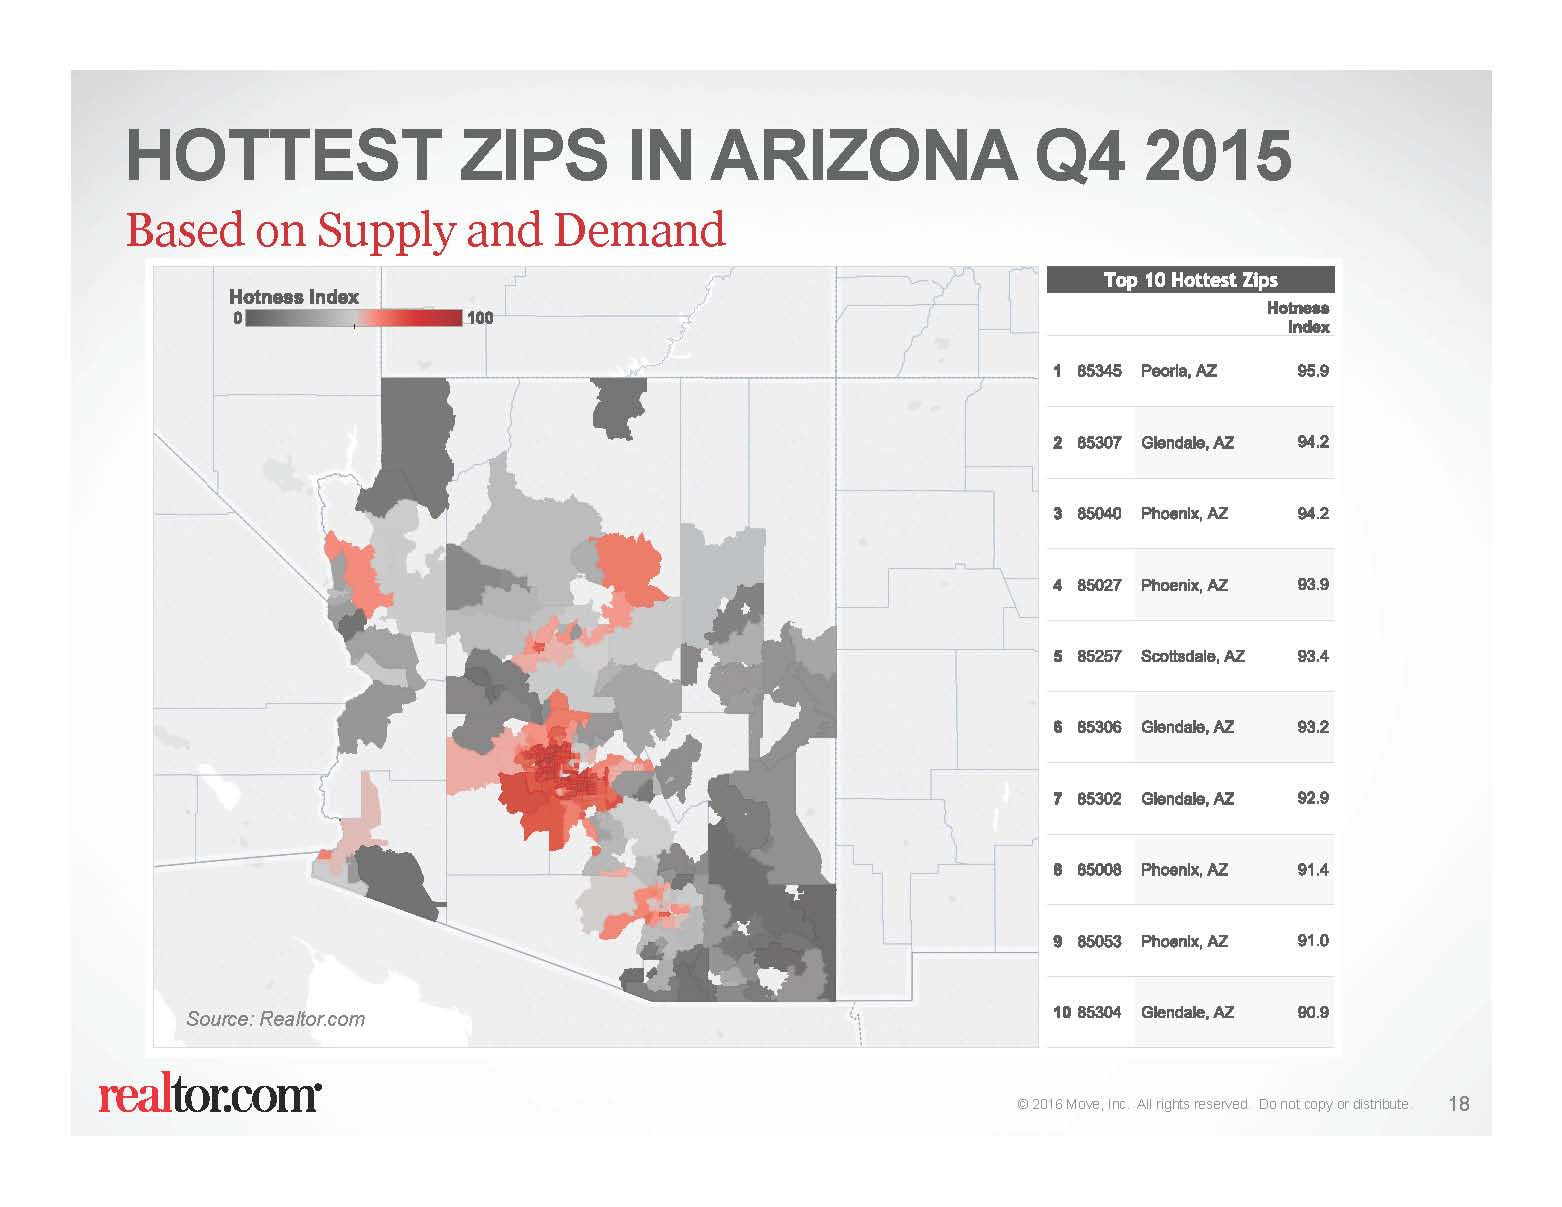 Hottest Zips in Arizona Q4 2015